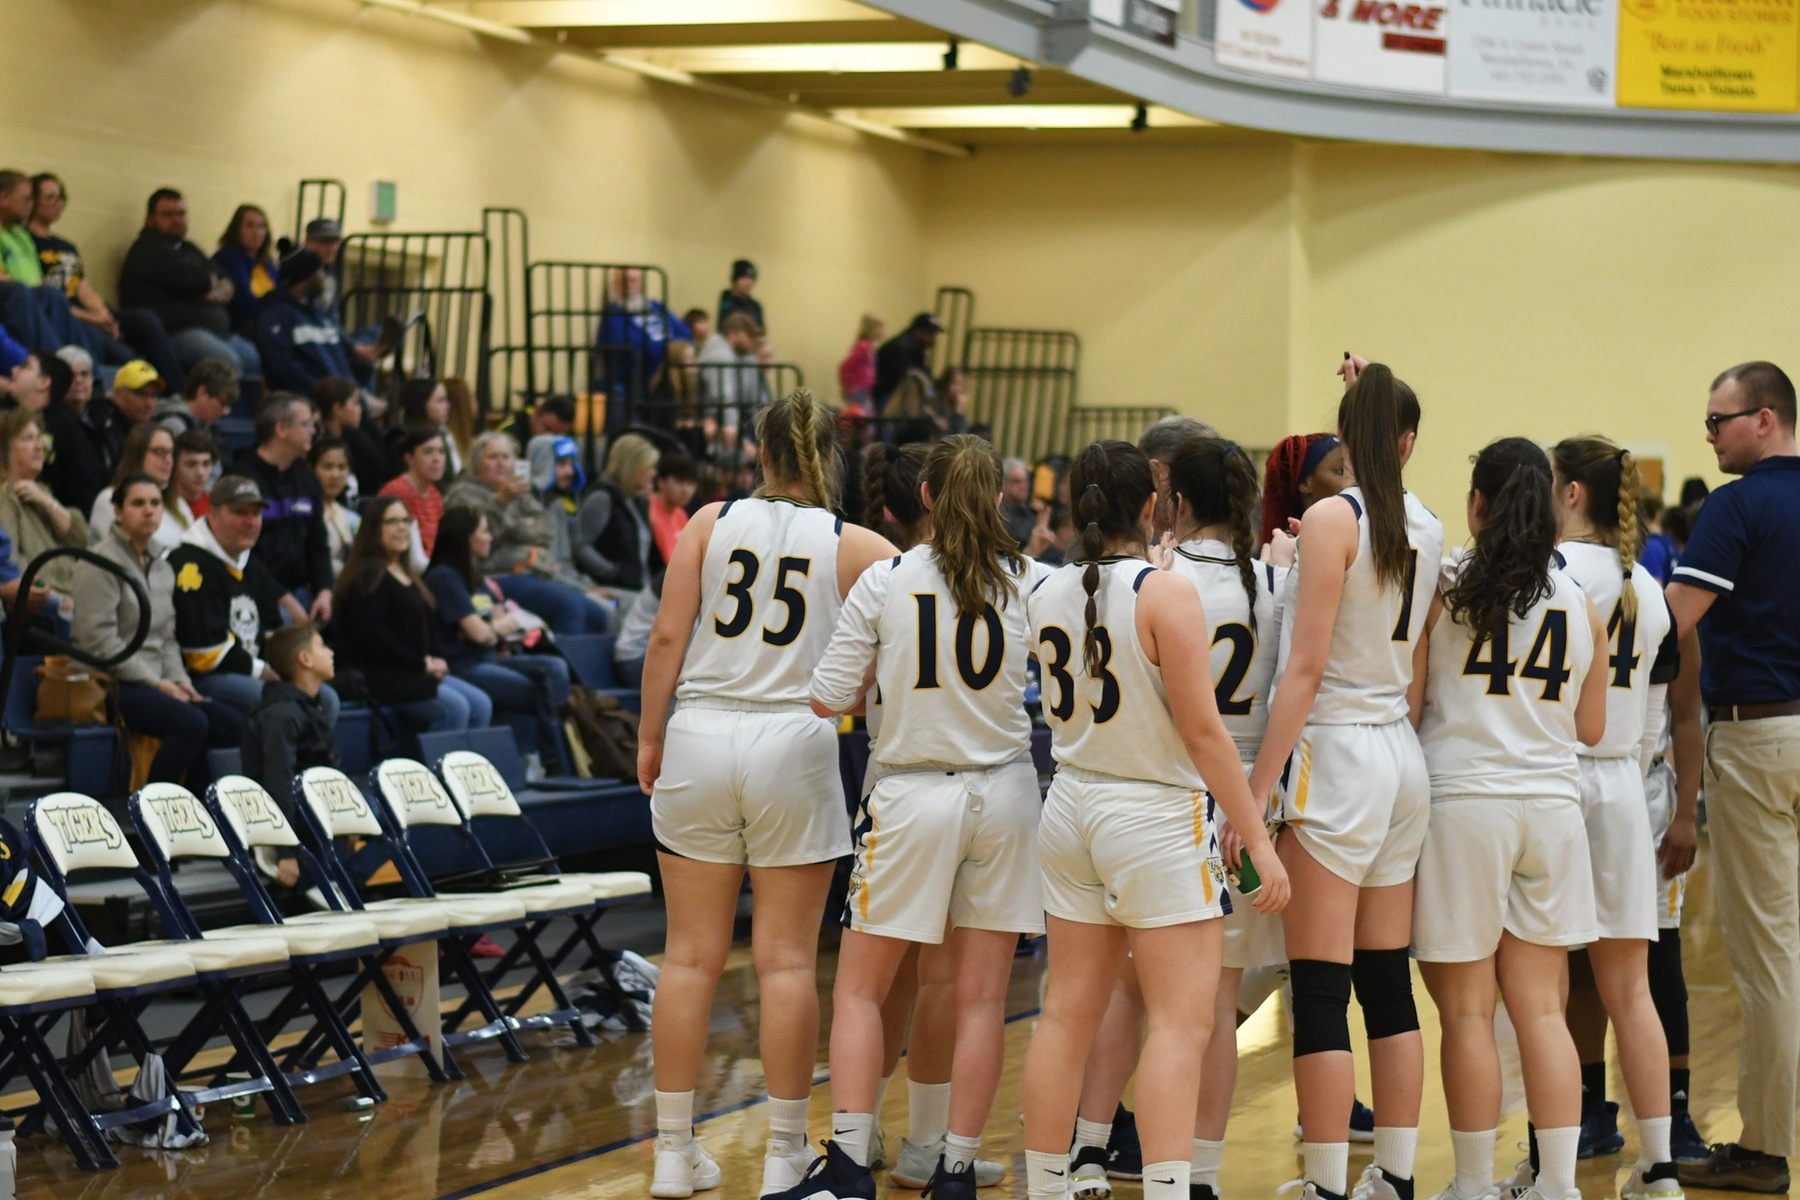 MCC women with back-to-back wins